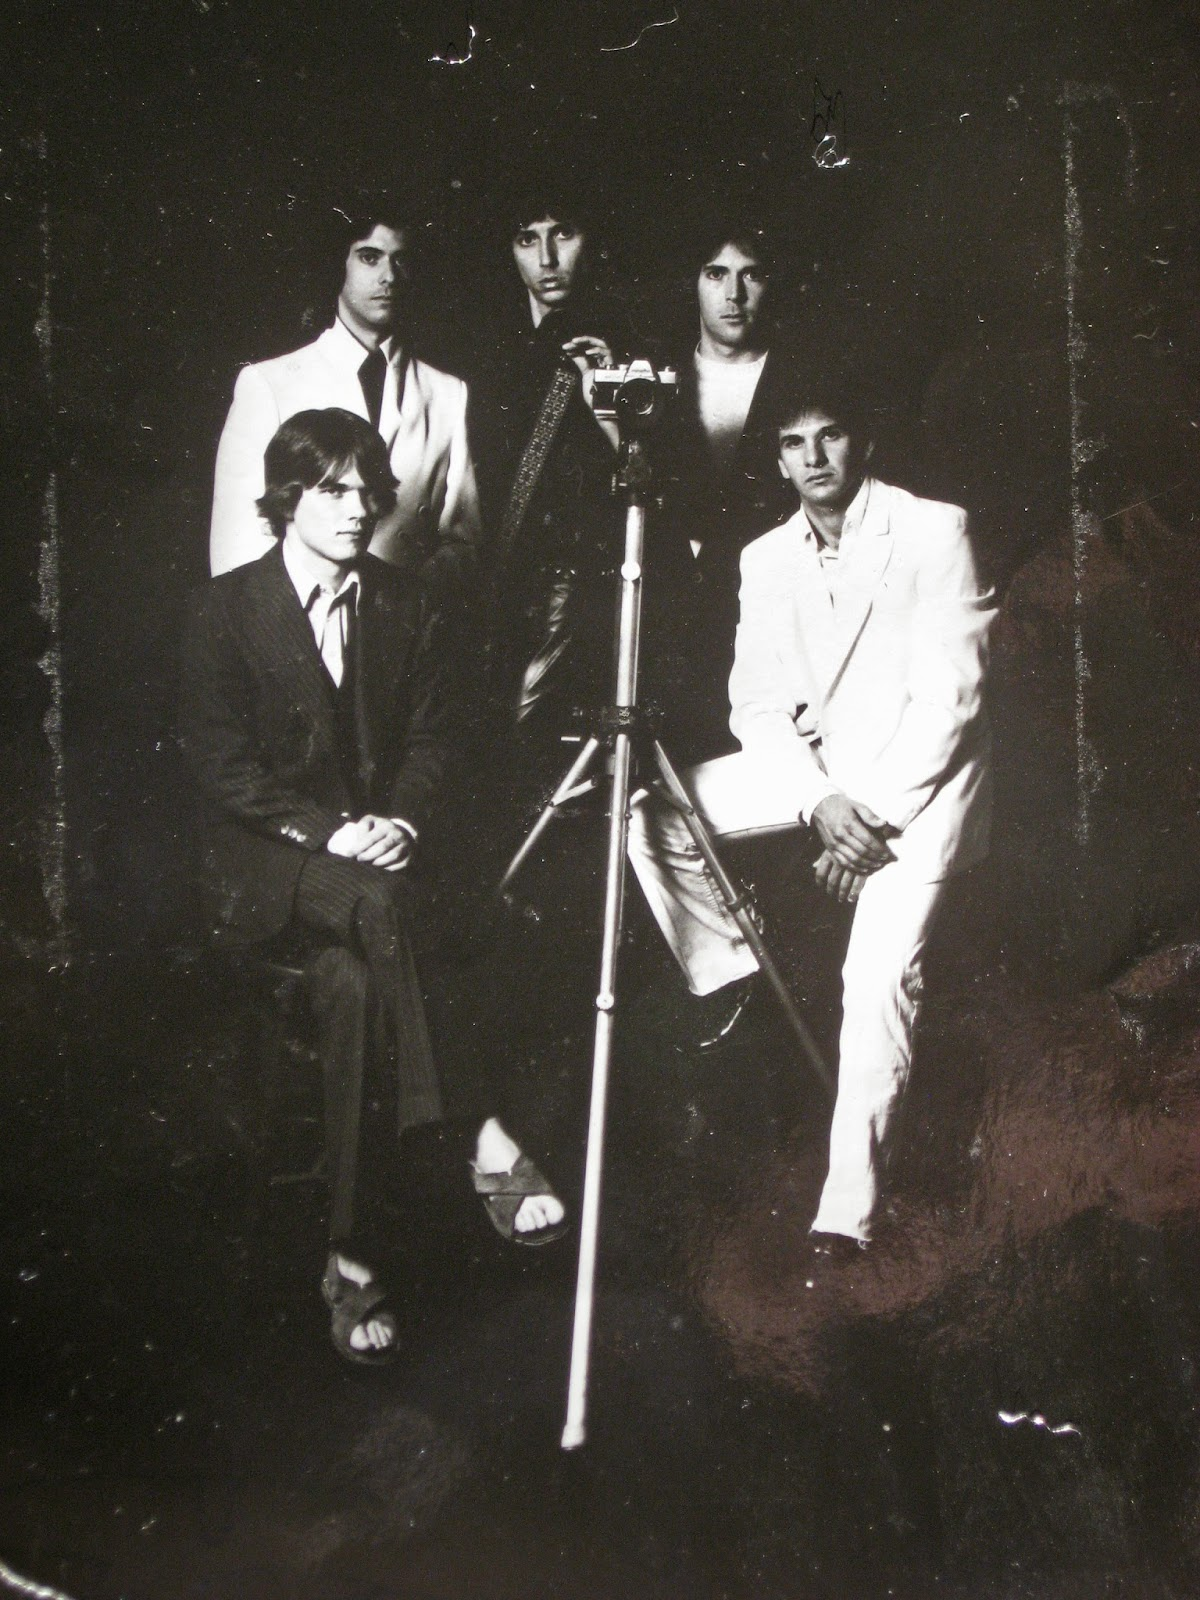 Promo pic I was given from The Soft Parade band back in 1981 at The Factory rock club just days before I shipped out for the navy.